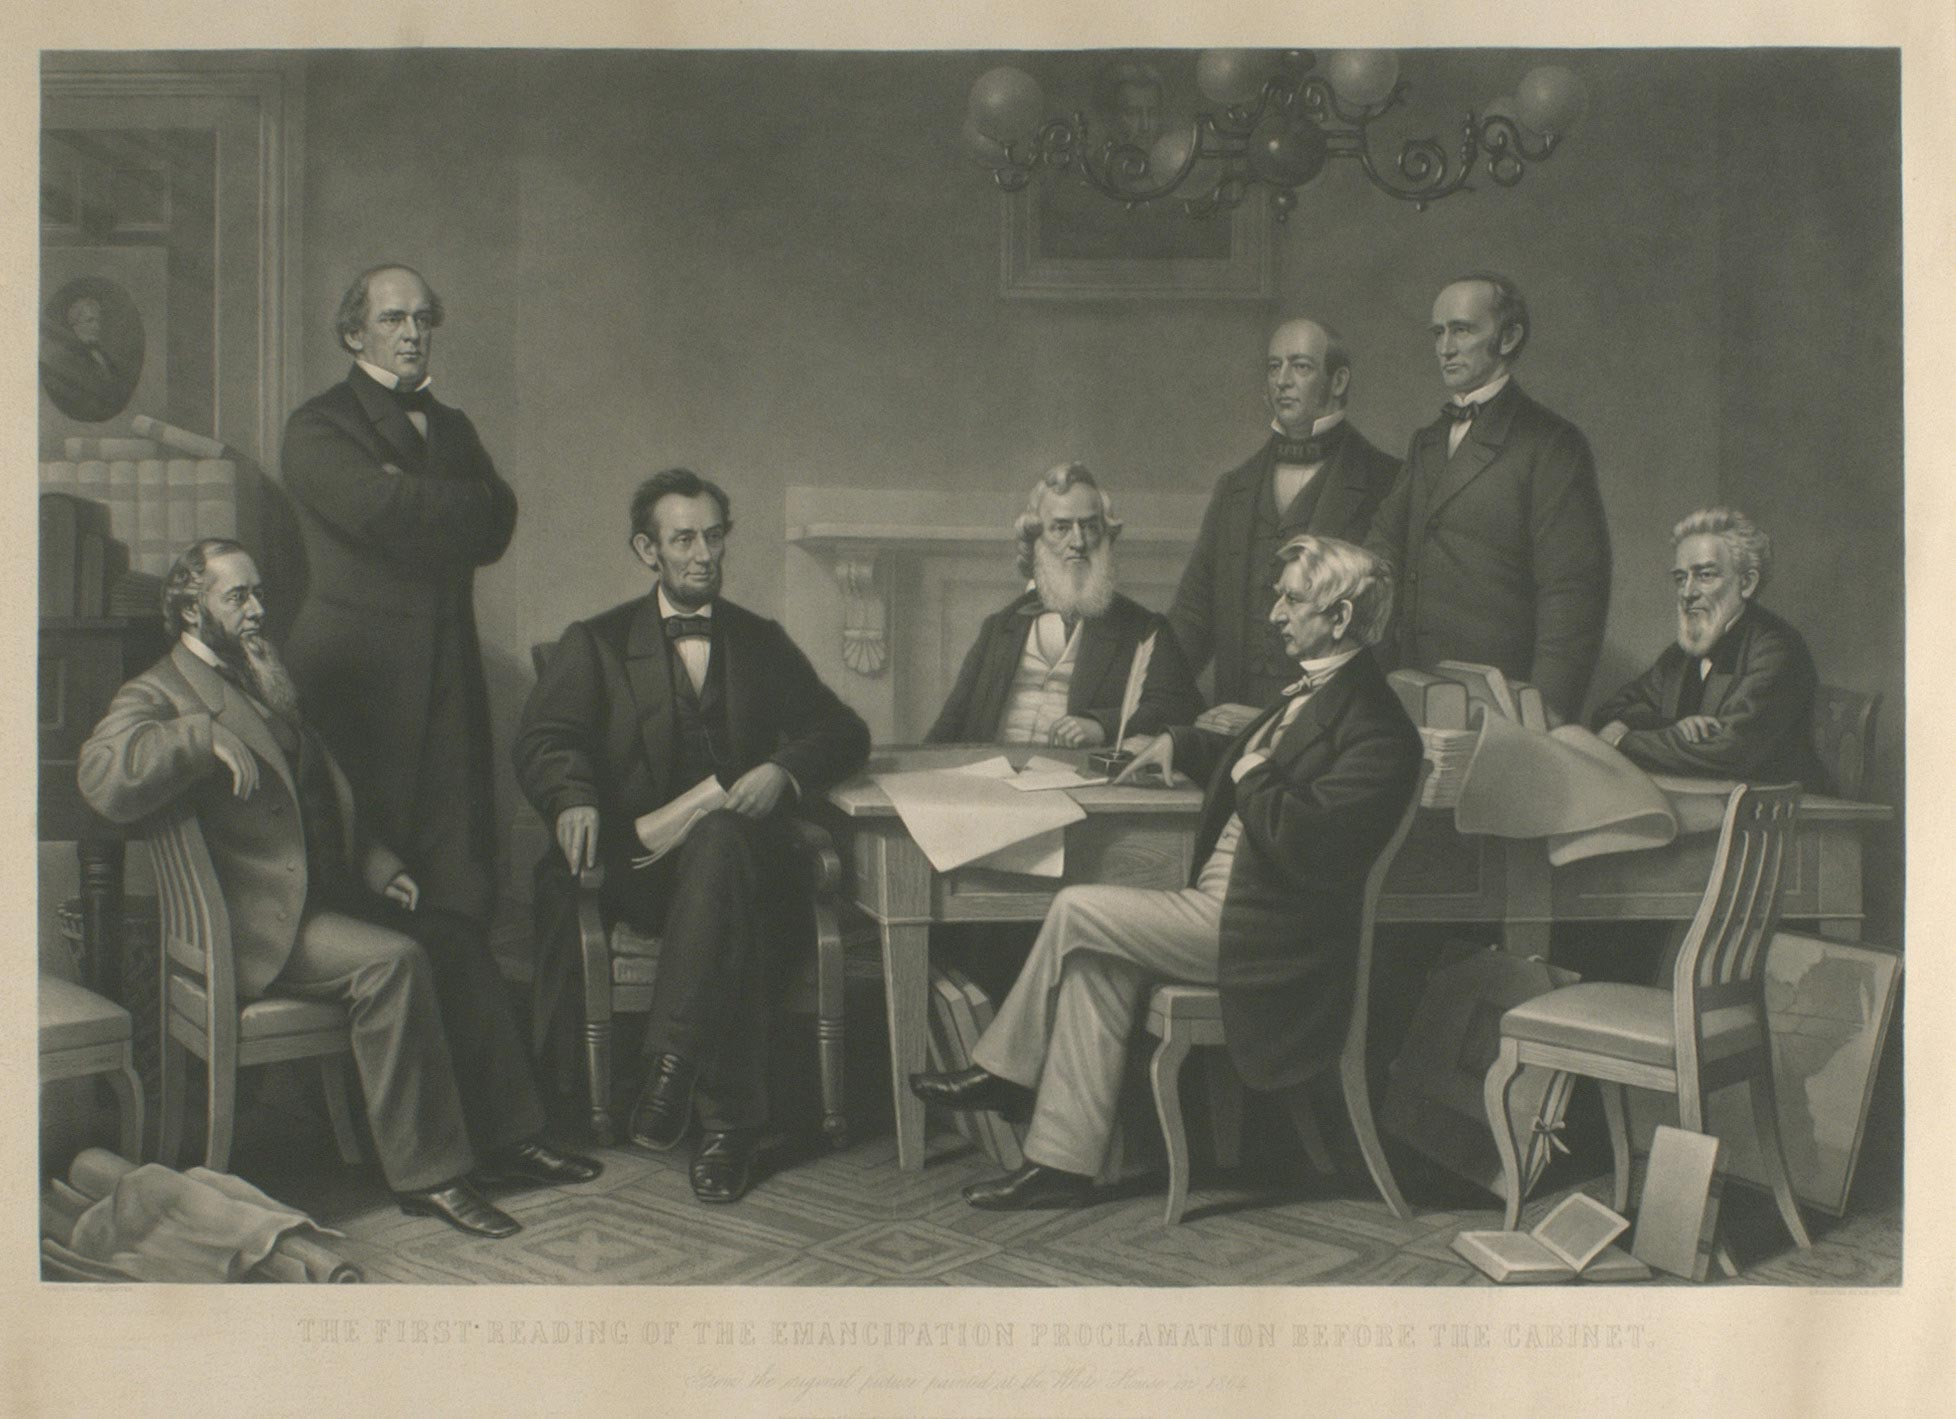 A.H. Ritchie, The First Reading of the Emancipation Proclamation Before the Cabinet 71.2009.081.0078